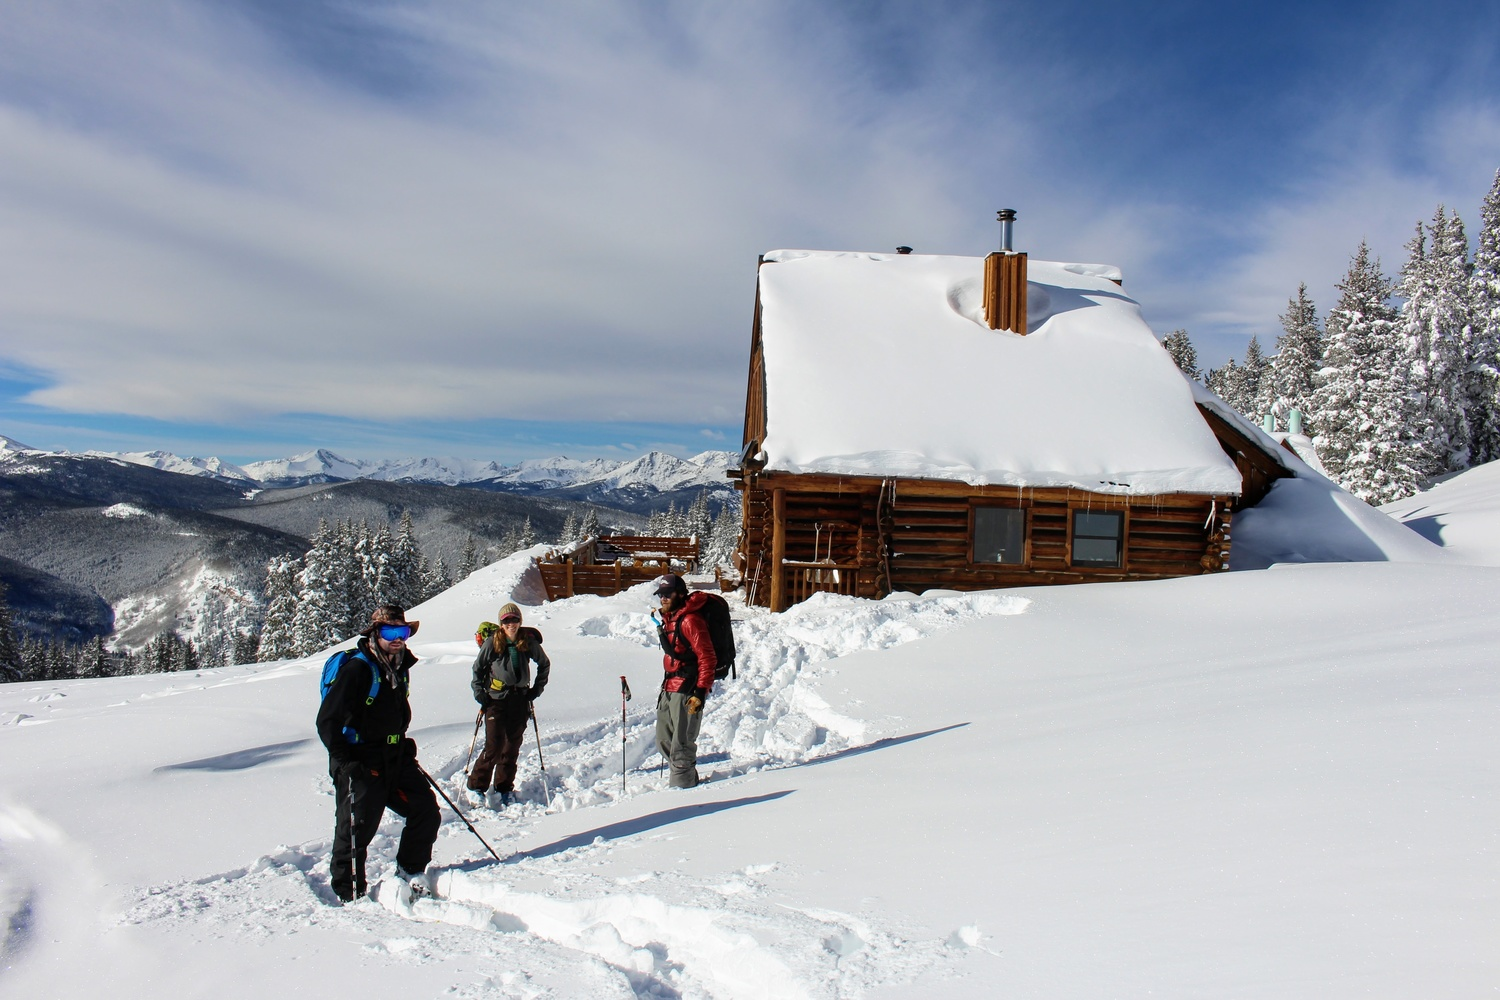 Skinning out from the Hut by Rich Morgan